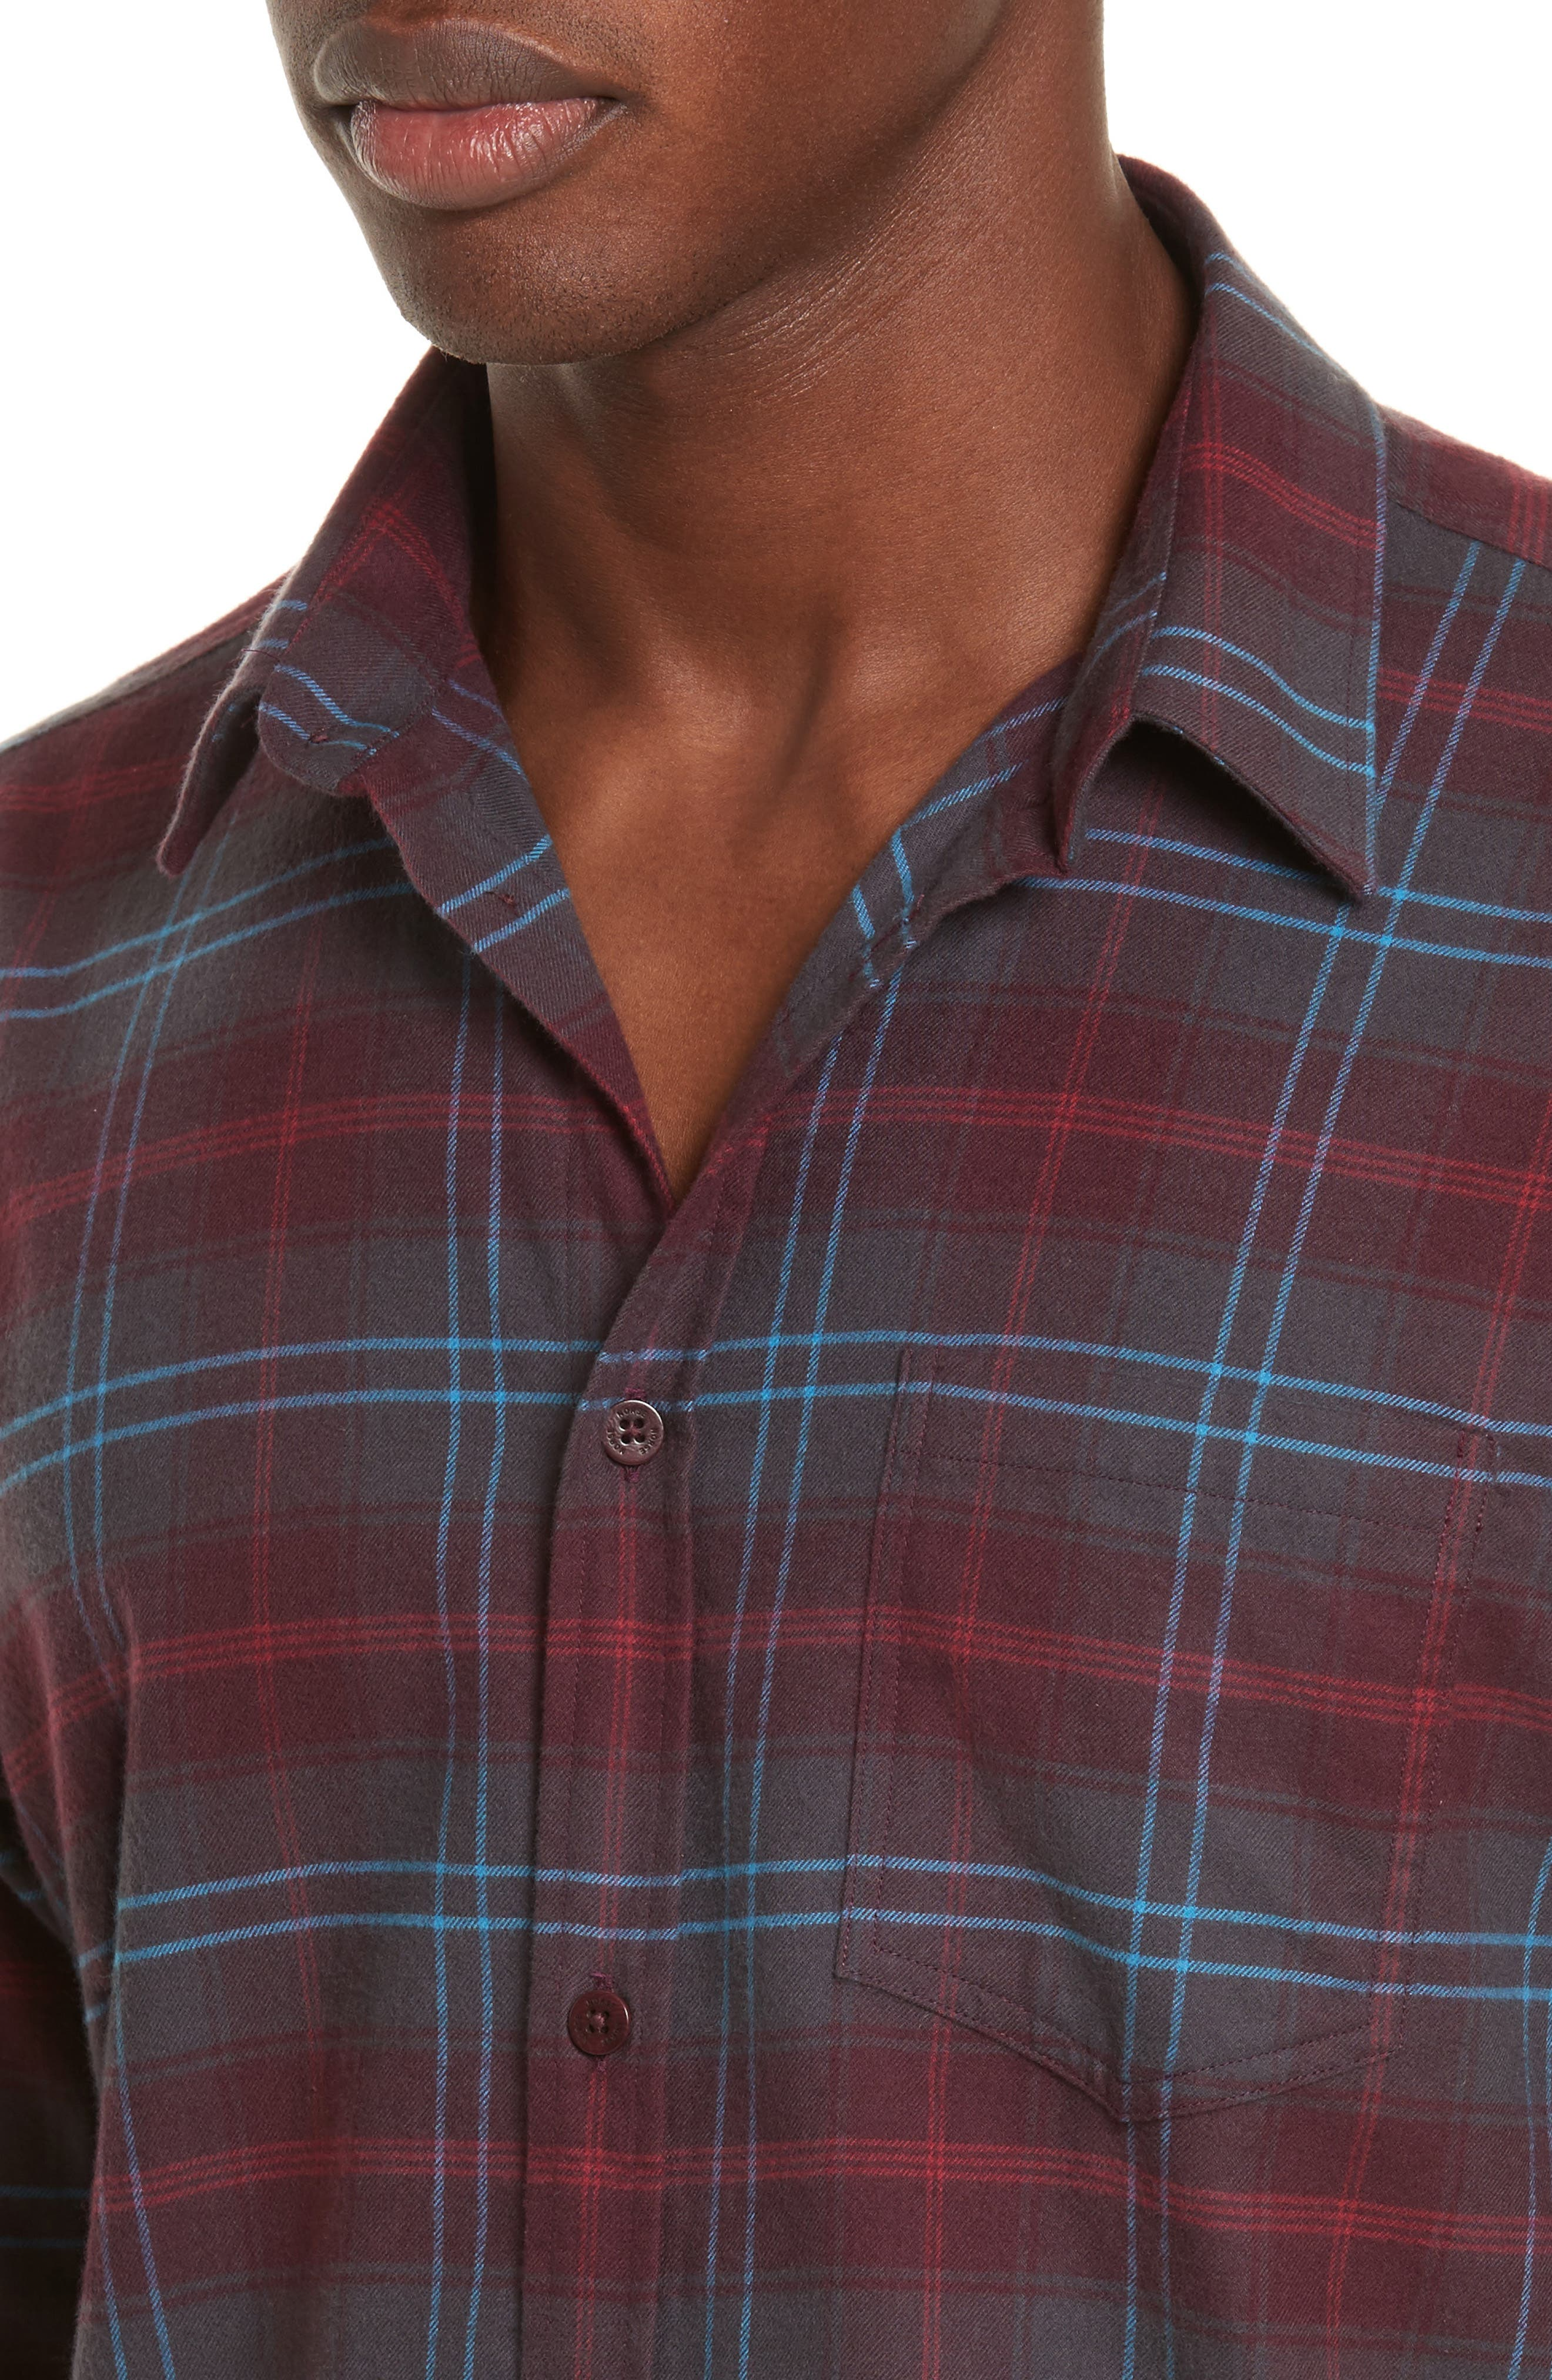 NORSE PROJECTS,                             Hans Brushed Check Shirt,                             Alternate thumbnail 5, color,                             616